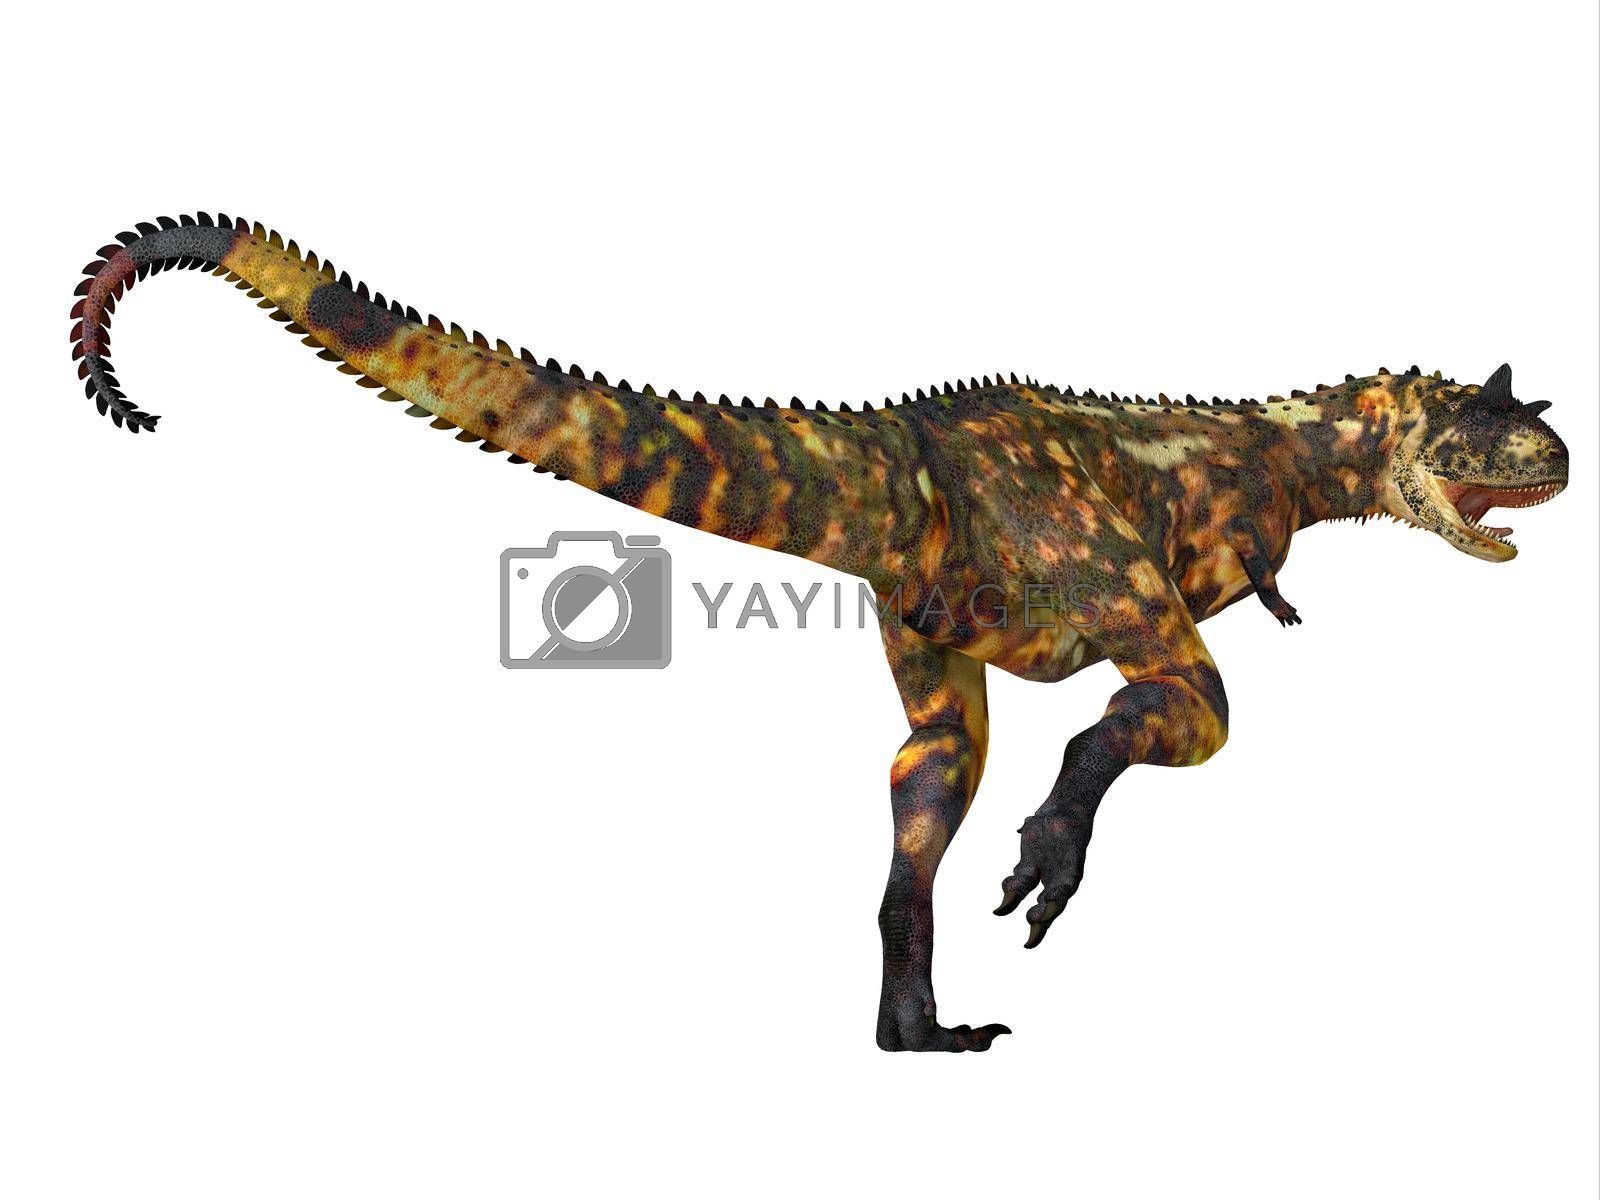 Carnotaurus was a carnivorous theropod dinosaur that lived in Patagonia and Argentina during the Cretaceous Period.